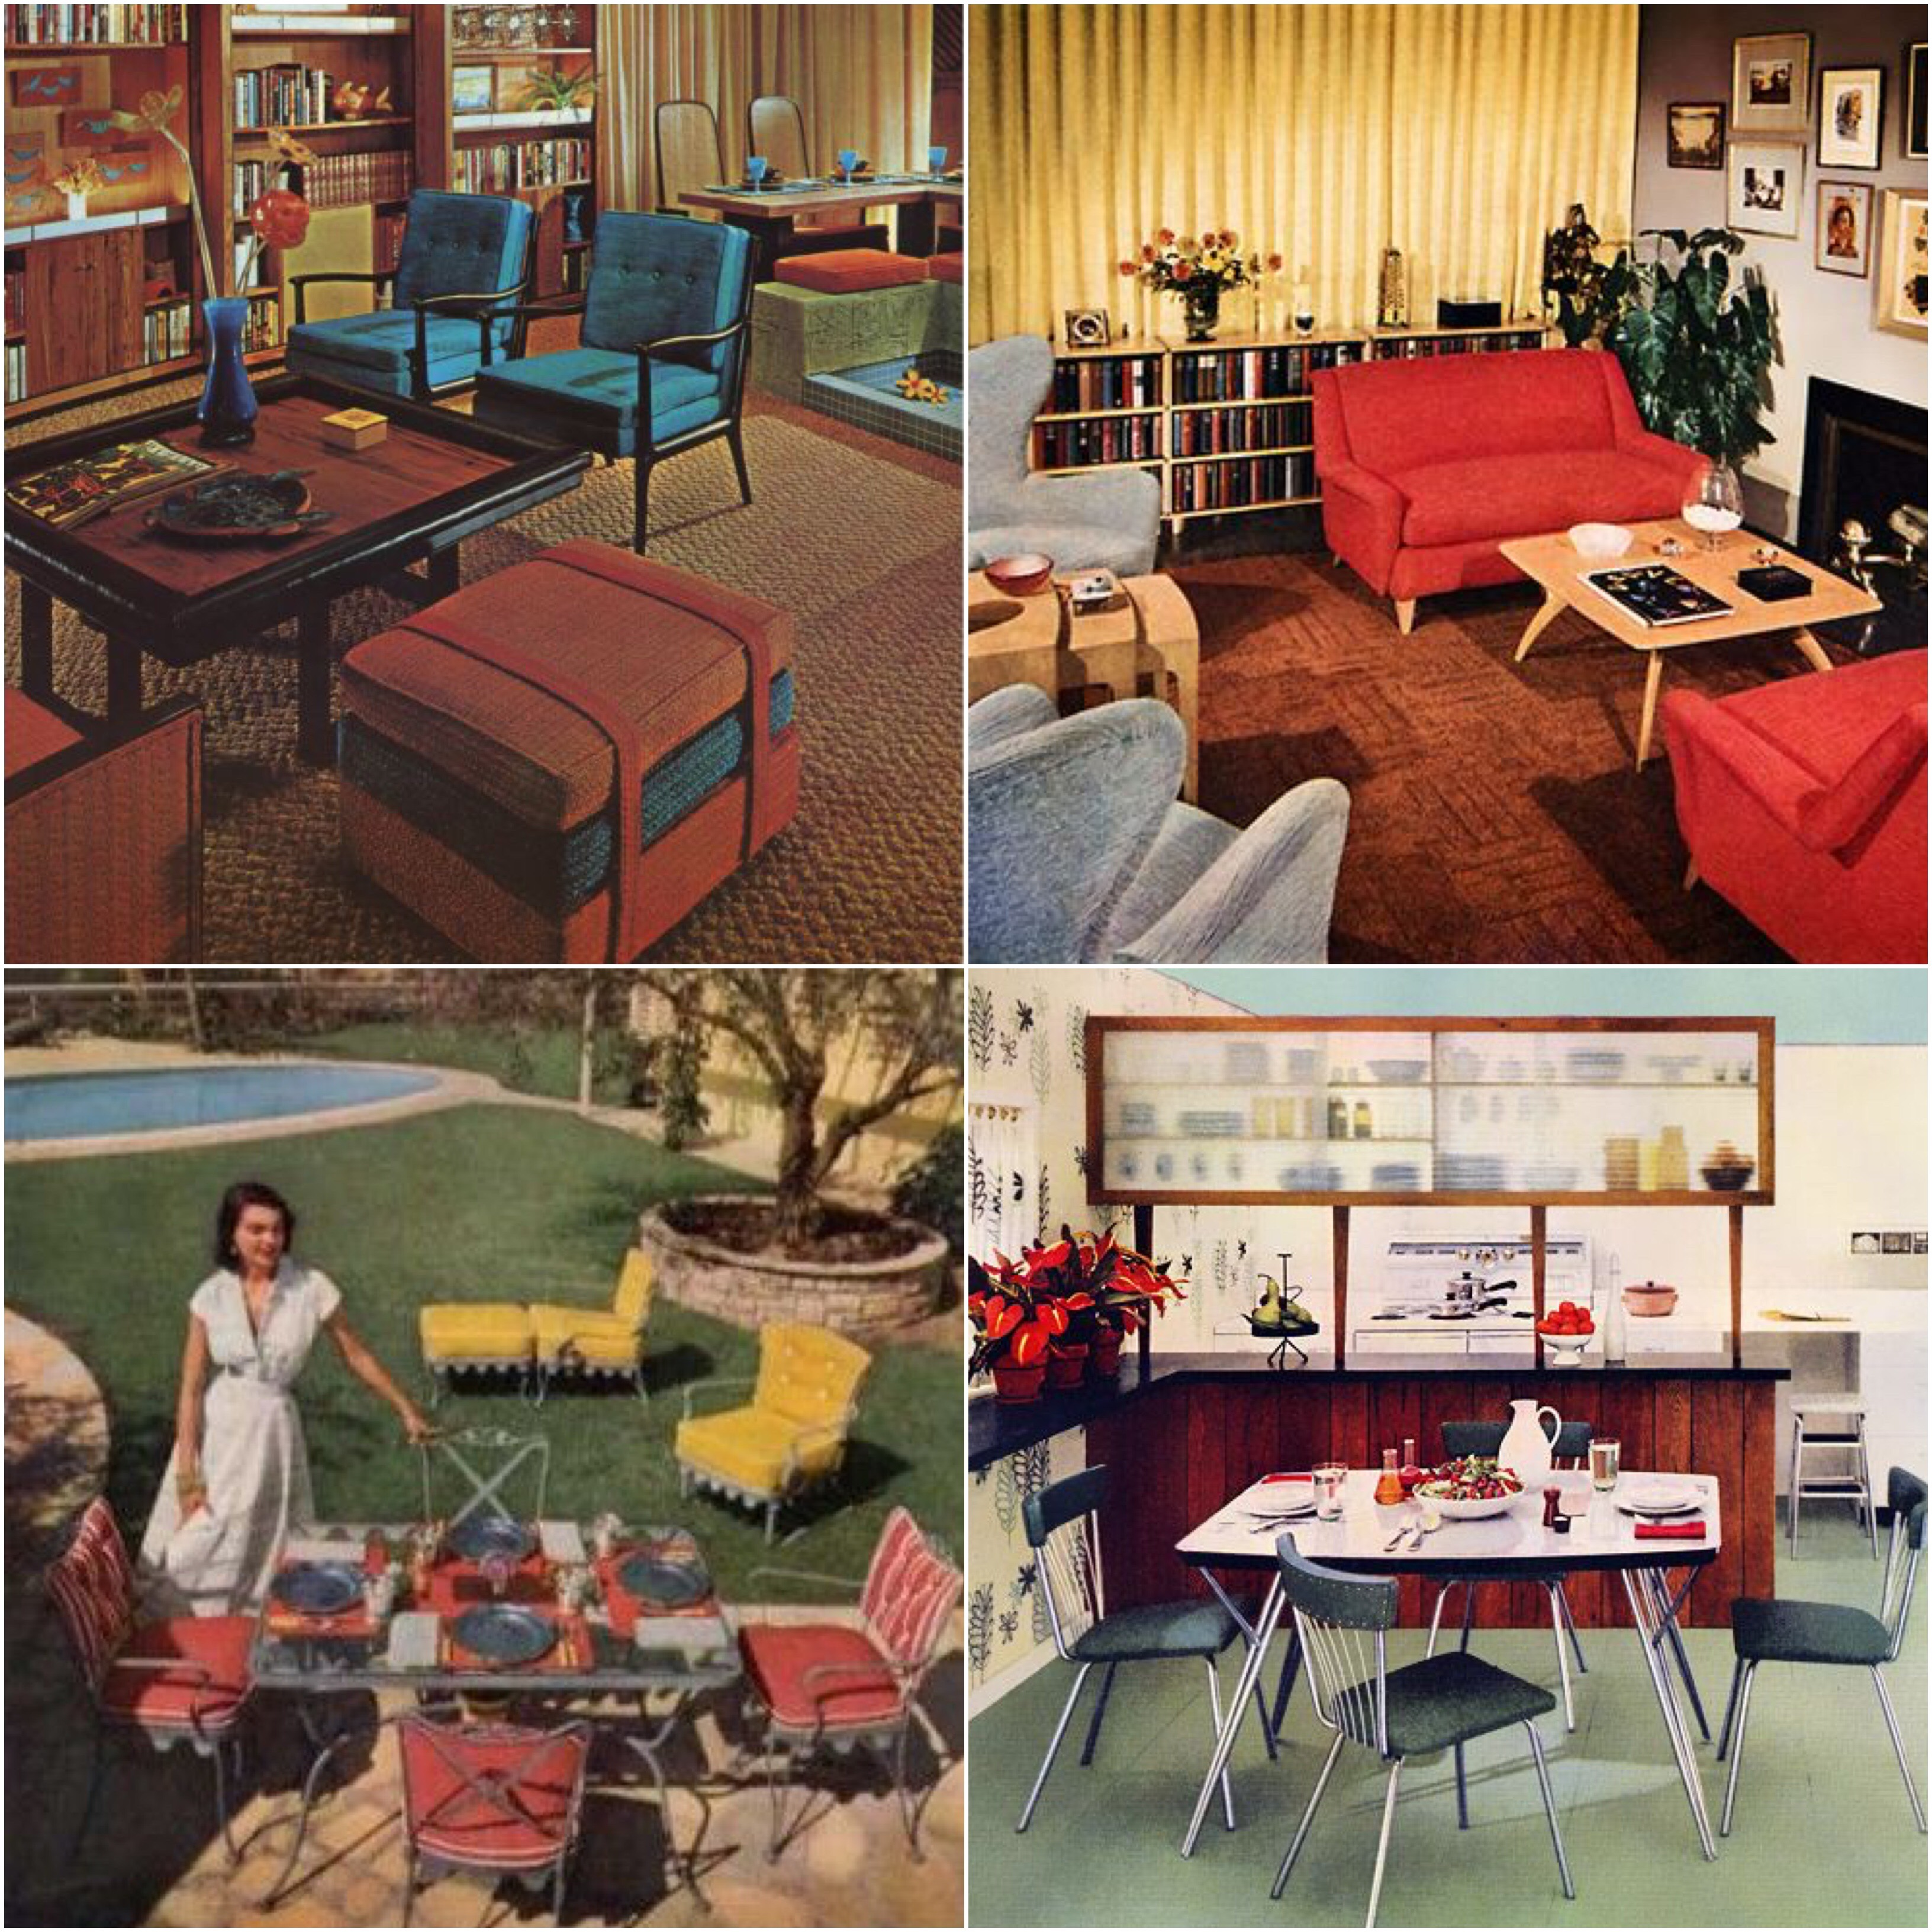 1950s house interior. Furniture Of The 1950s Varied  Ranging From Traditional Upholstered Furniture To Space Age Futuristic Shaped Pieces Vinyl Dining Chairs And Chrome Legged 7 Reasons Why 1950 S Homes Rocked